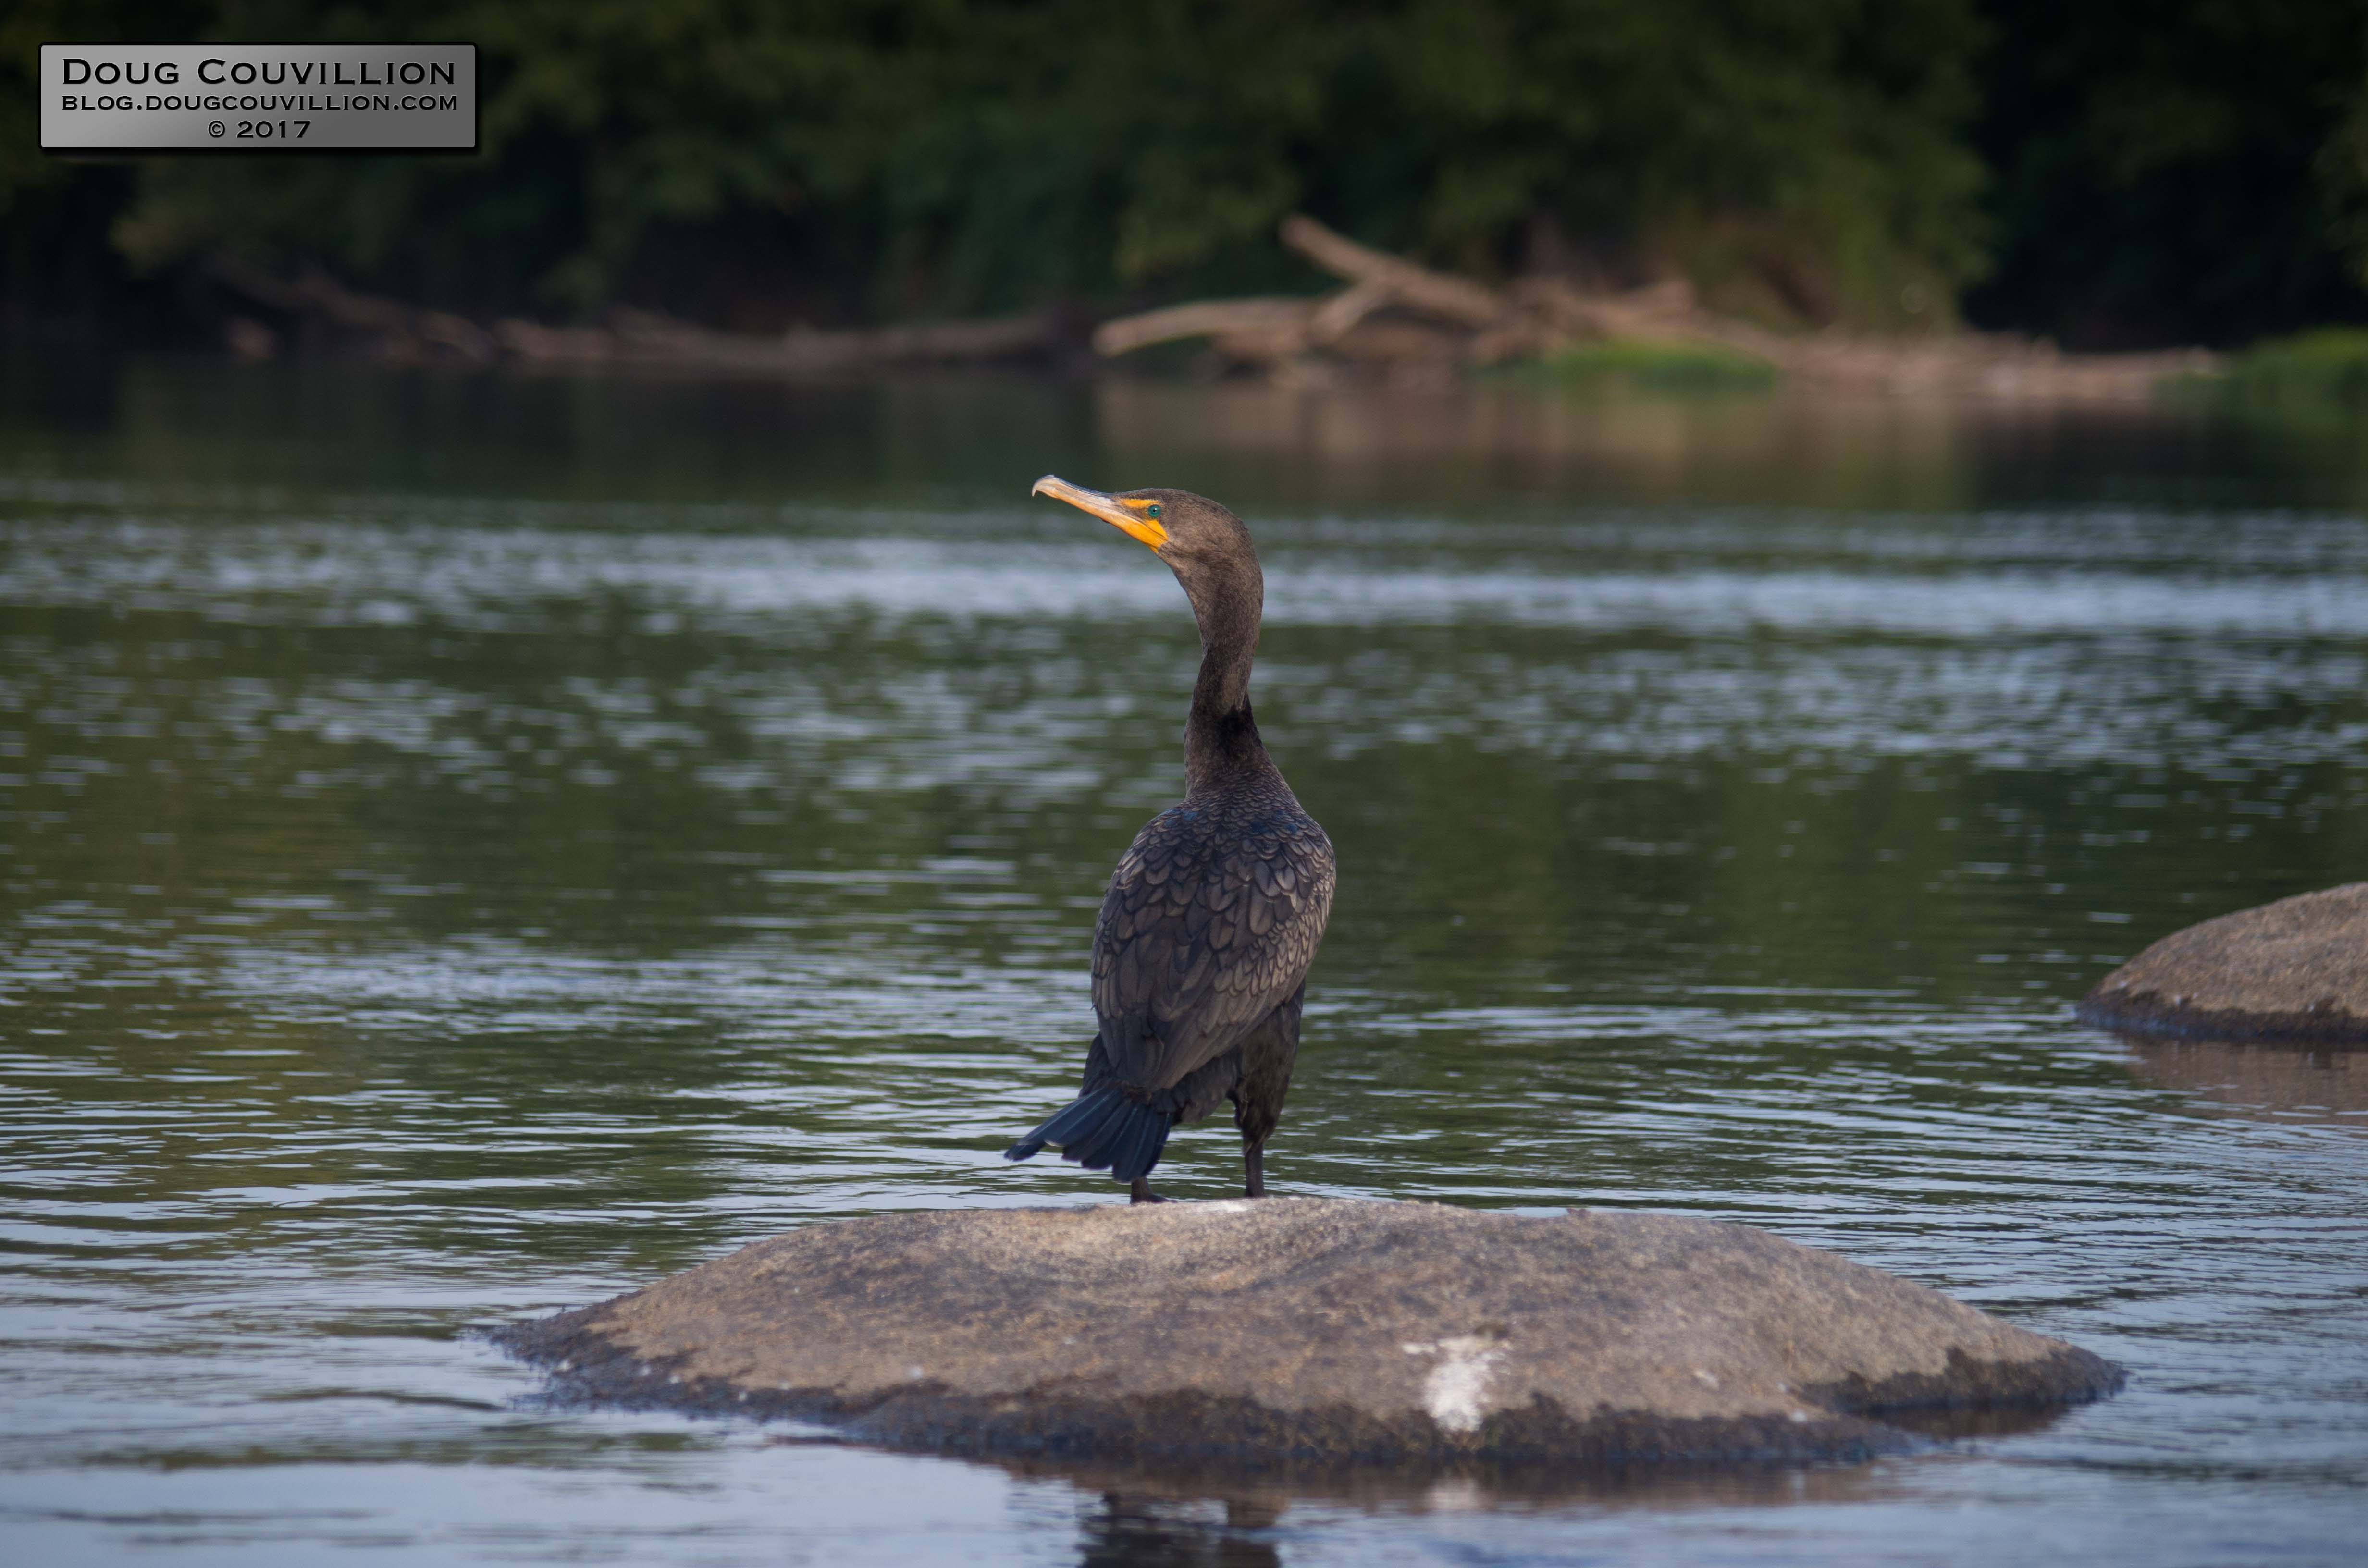 photograph of a double-crested cormorant standing on a rock in the James River by Doug Couvillion